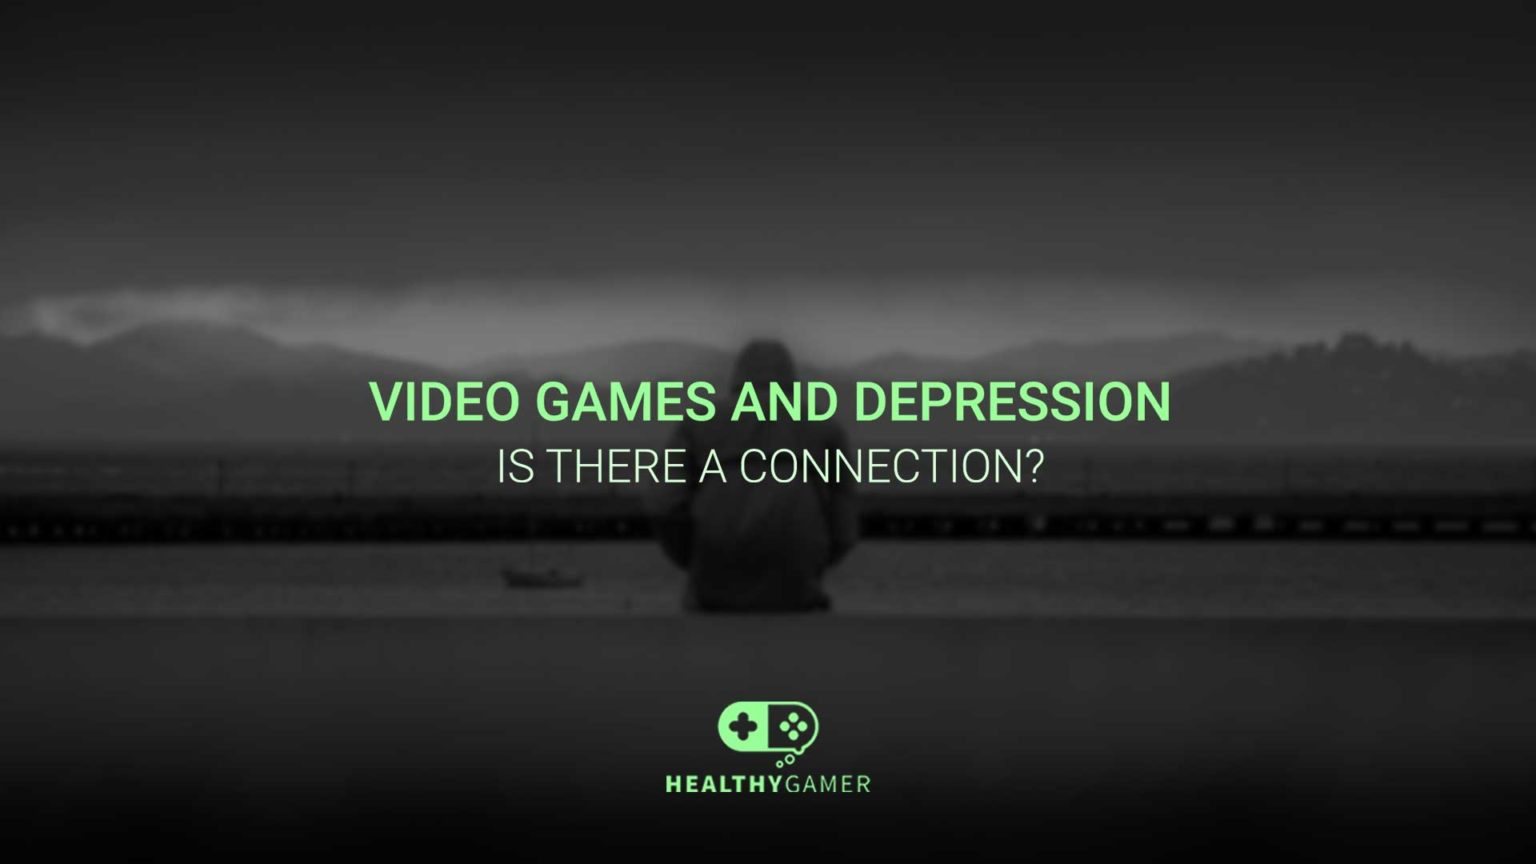 Video Games and Depression: Is There a Connection?